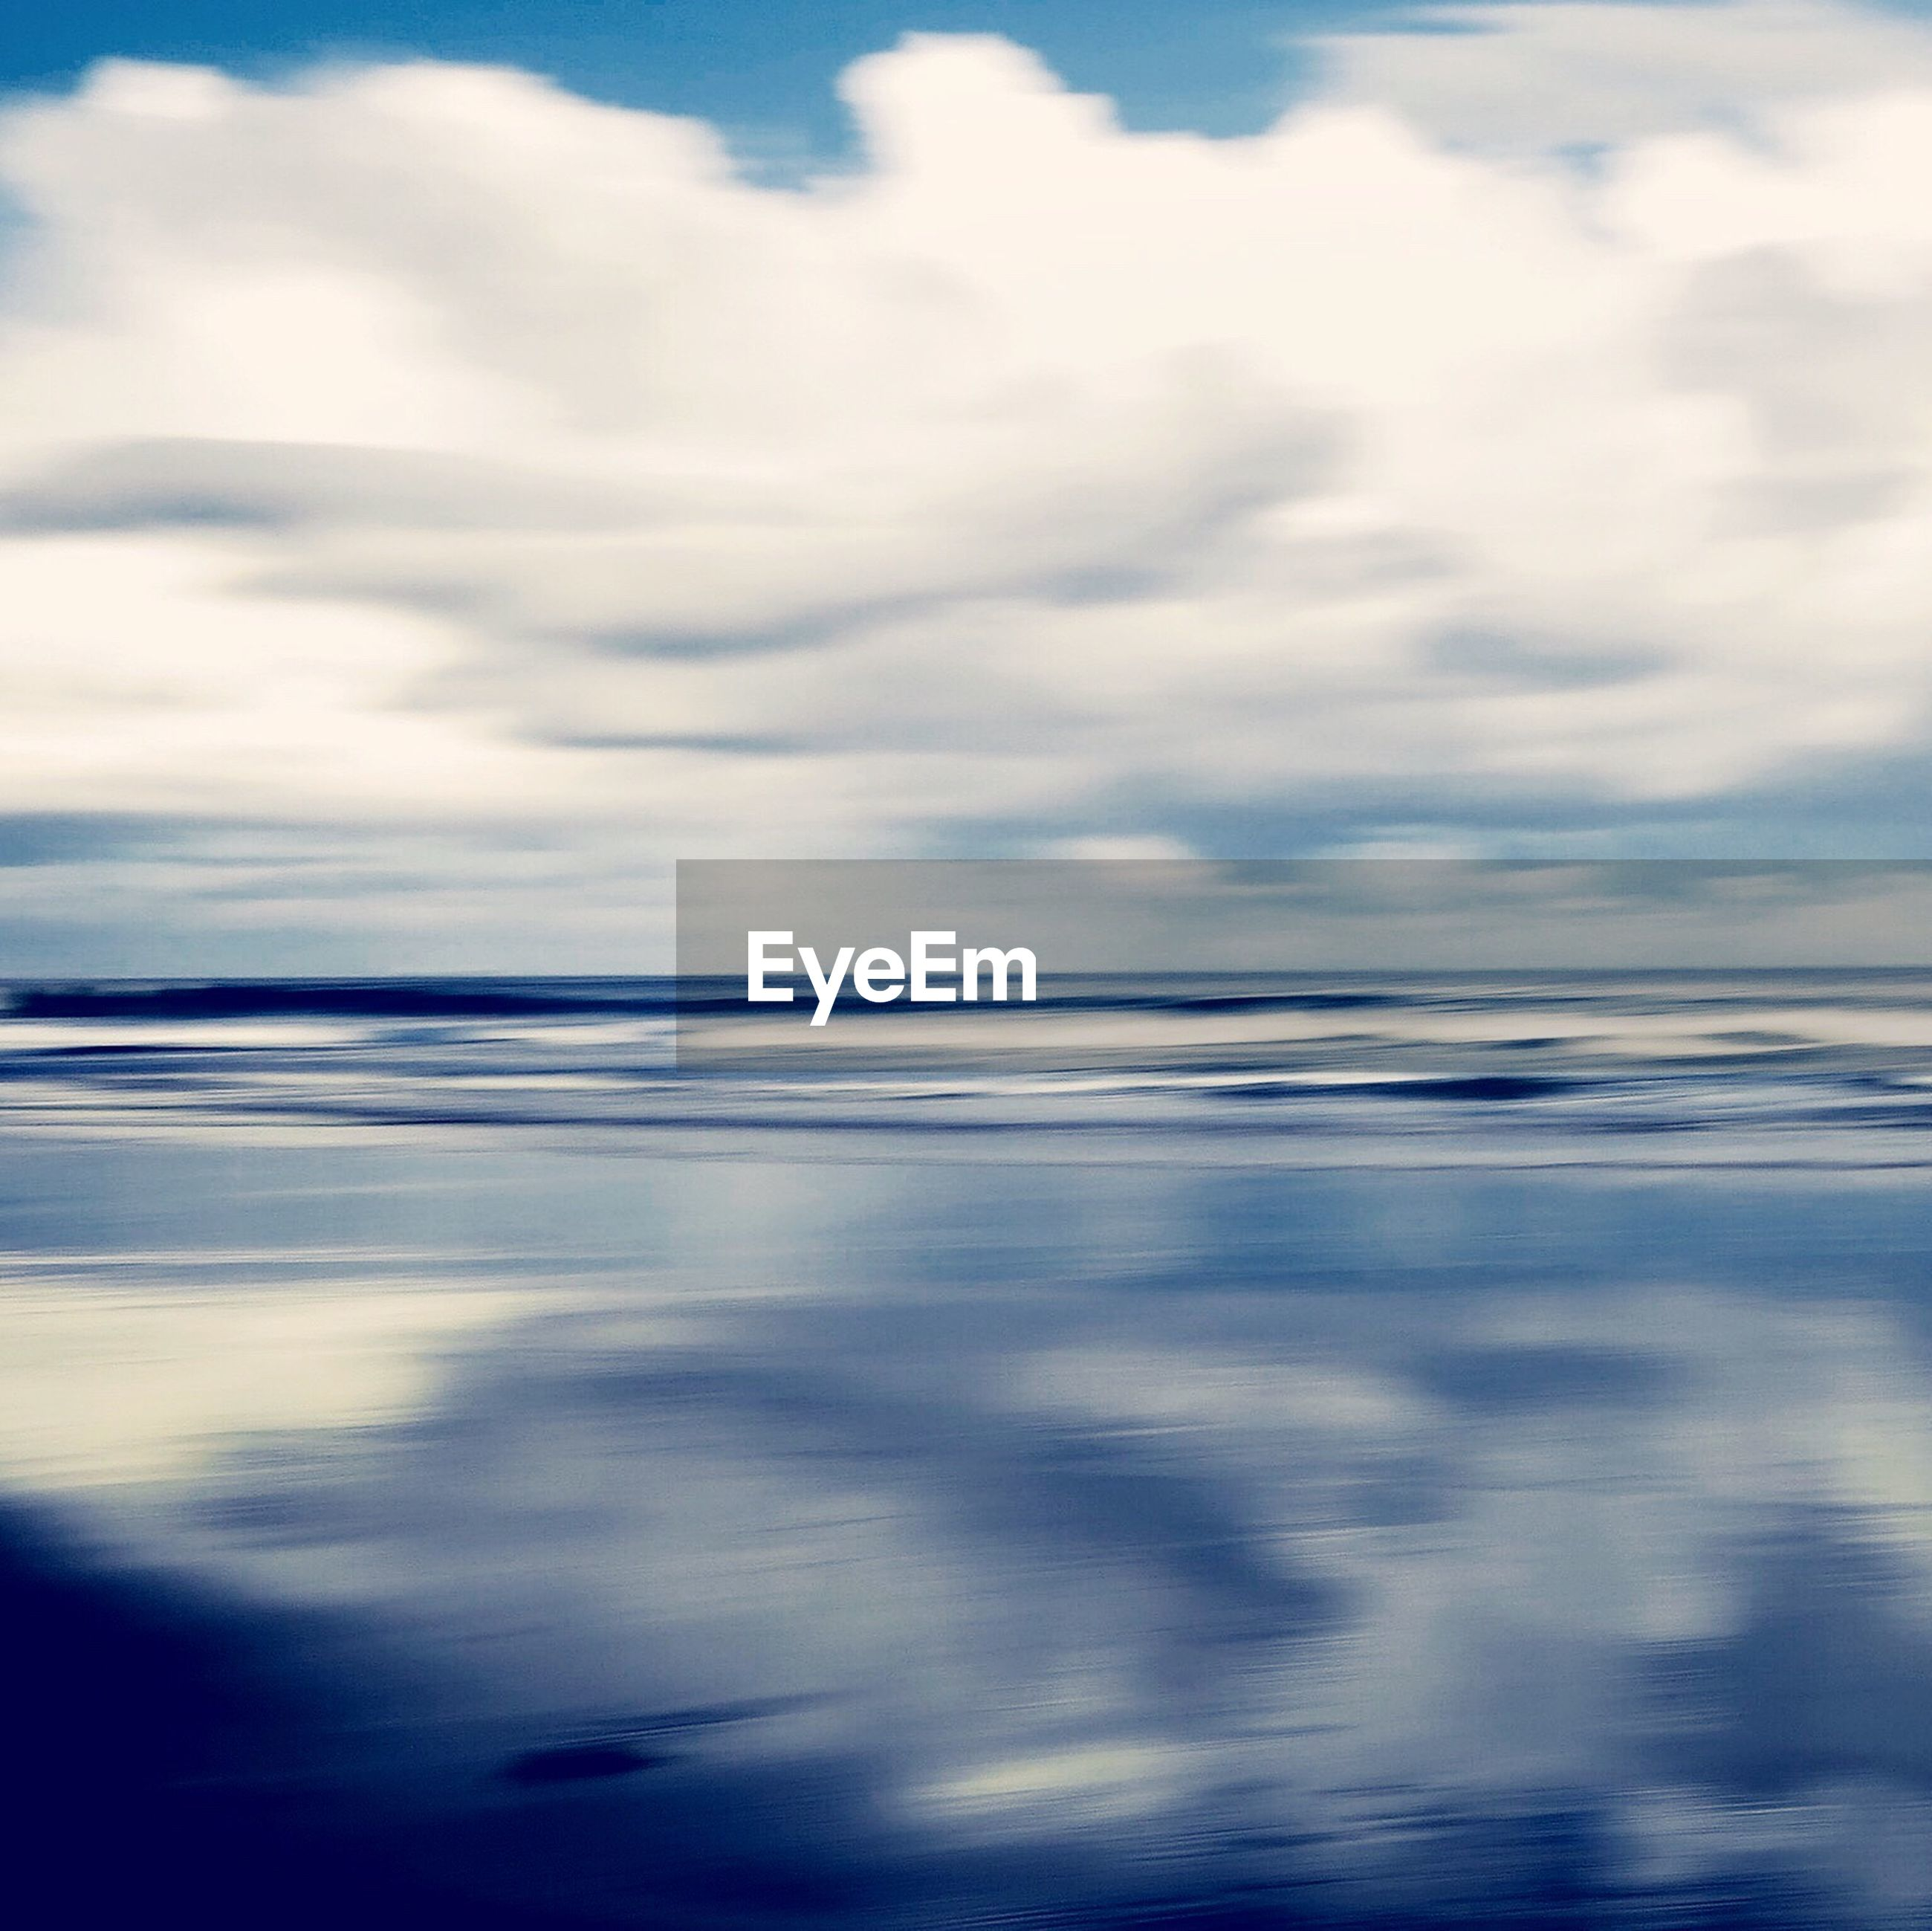 scenics, sea, water, tranquility, nature, beauty in nature, reflection, tranquil scene, outdoors, sky, no people, cloud - sky, day